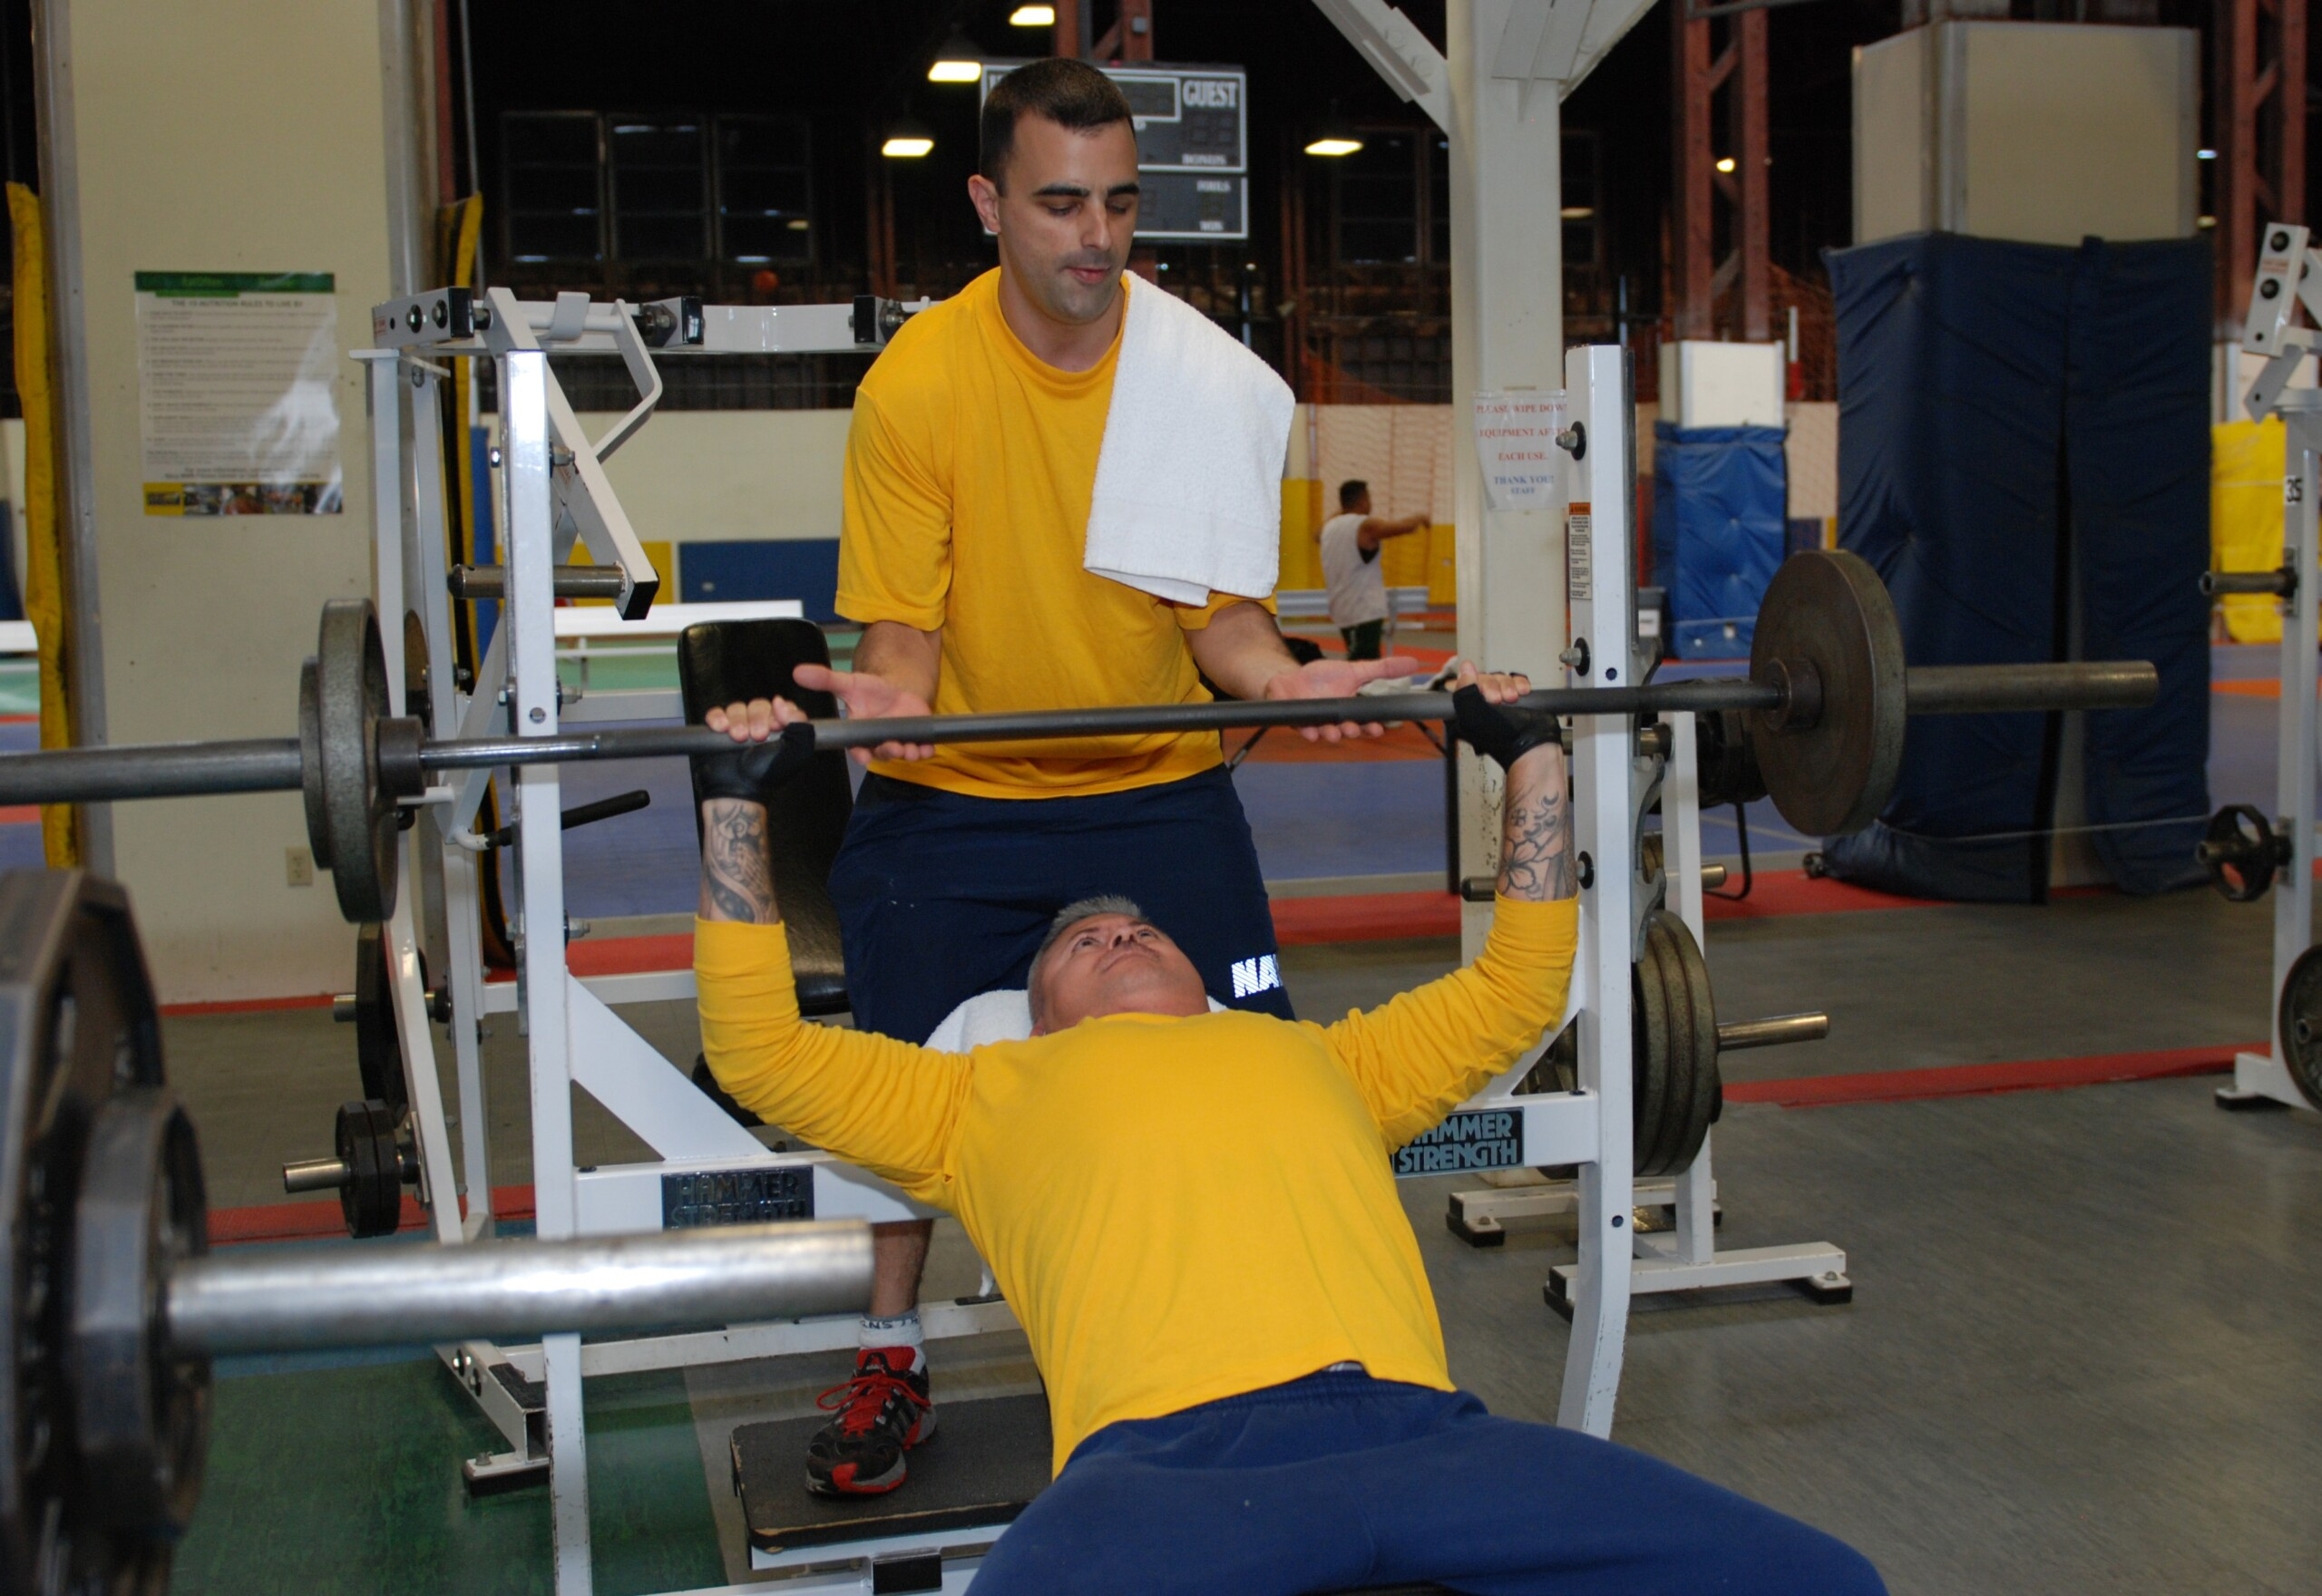 THORACIC AORTIC ANEURYSM: Weightlifting & Cardio Guidelines